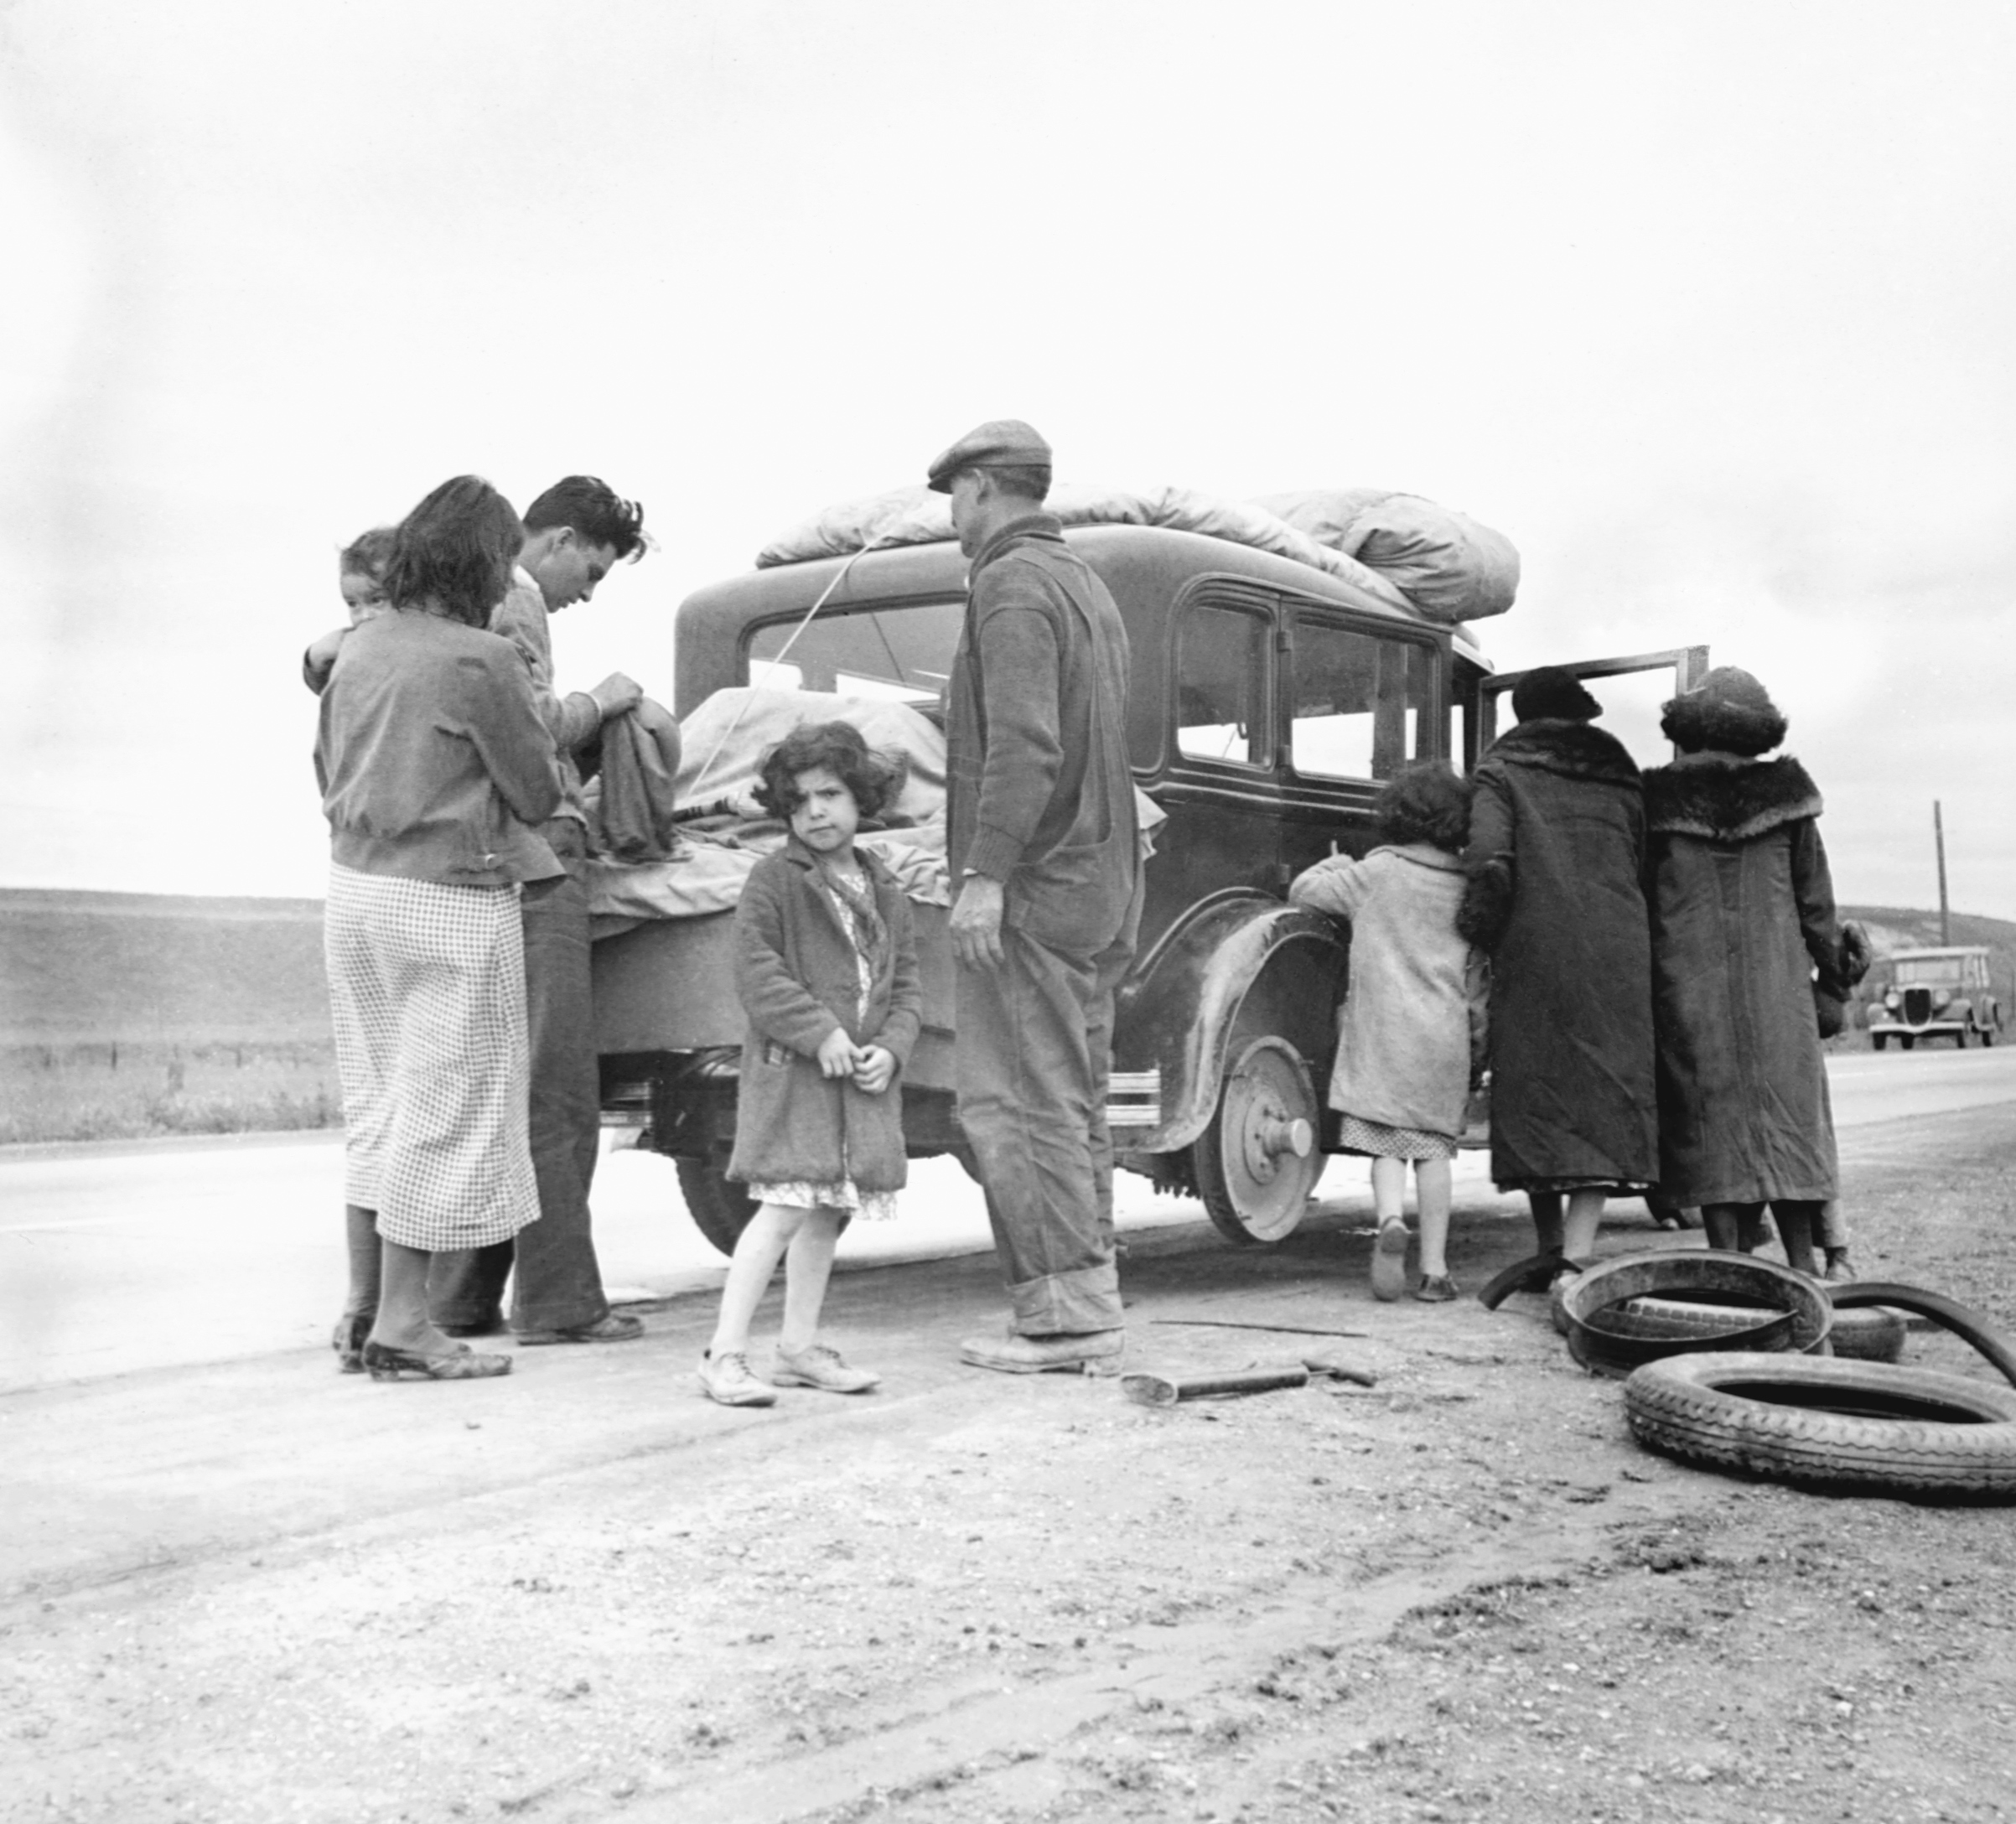 Migrant family from Mexico fixing a tire in California, February 1936.